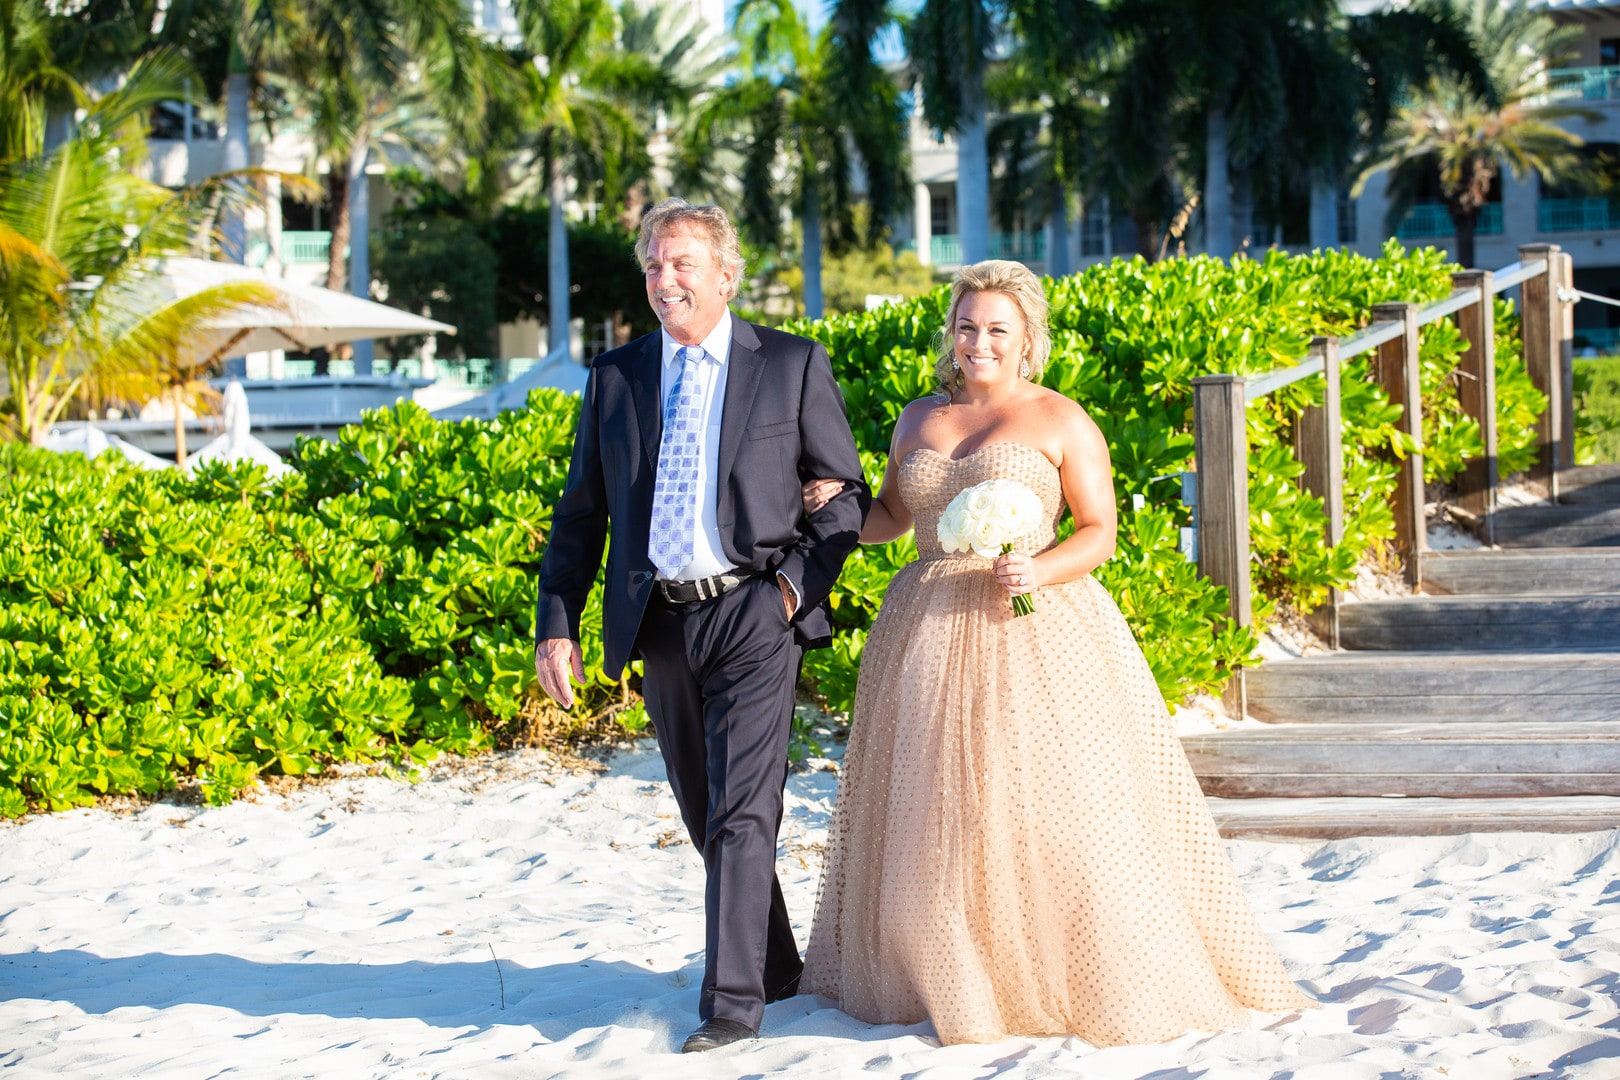 Classy wedding for a Non-Traditional Bride in the Turks & Caicos Islands, Photography by Paradise Photography for Destination Wedding network Adriana Weddings